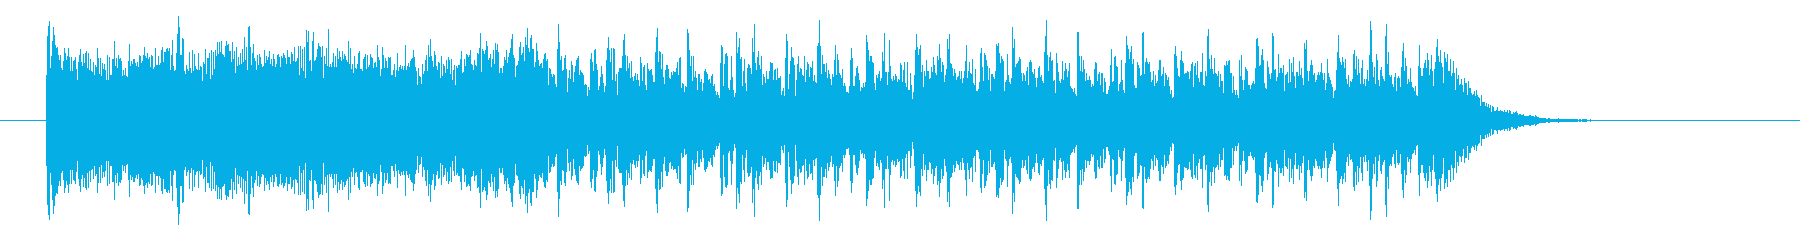 Digital sound with a sense of speed's reproduced waveform